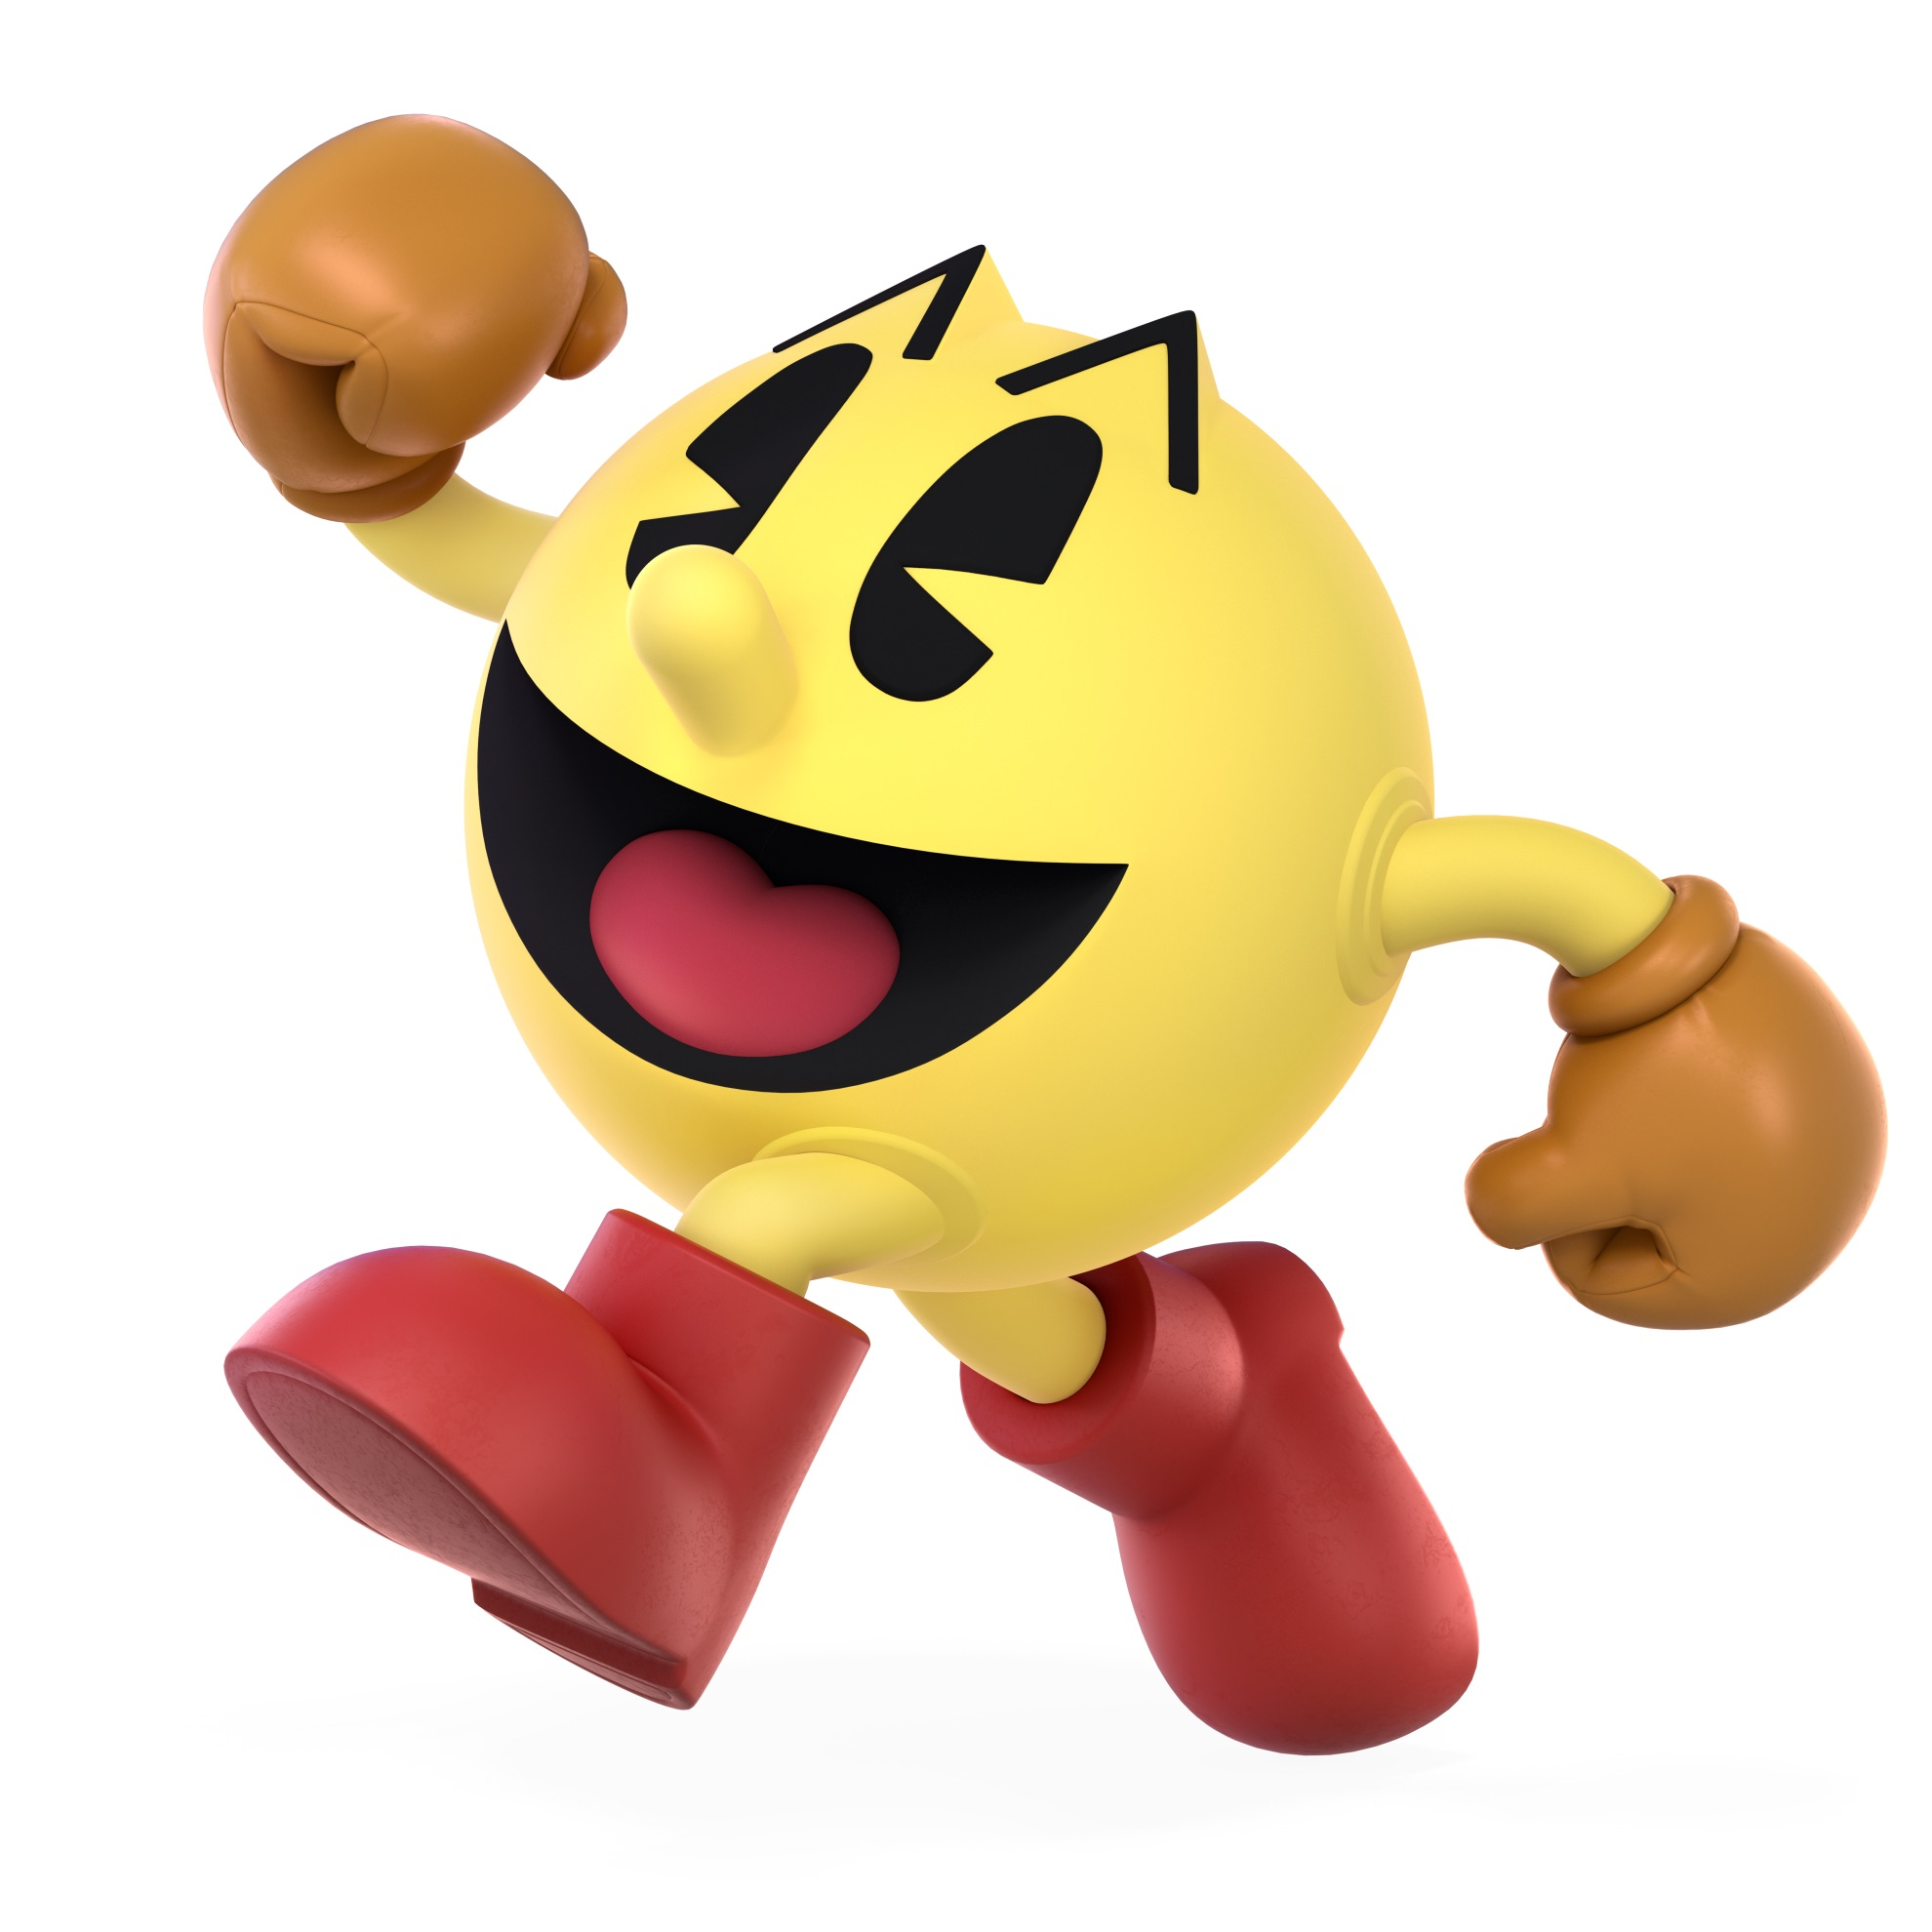 It's just a picture of Luscious Pac Man Render